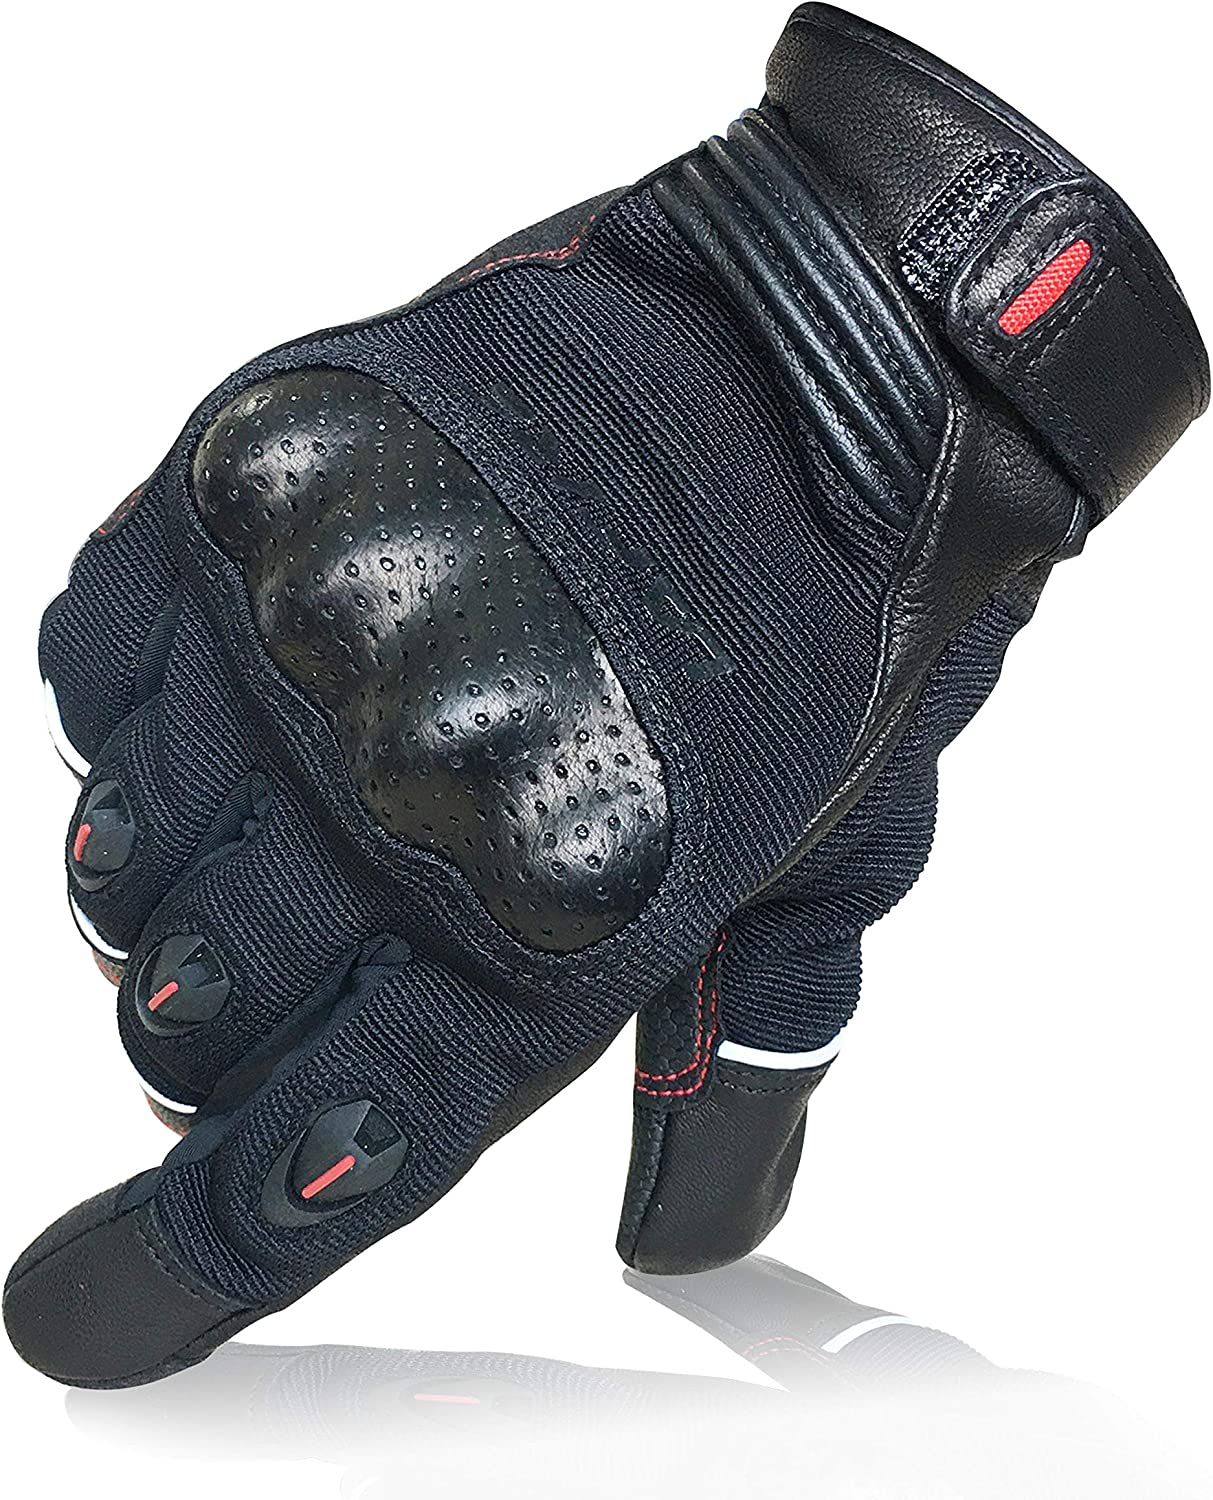 2020 Full Finger Touch Screen Breathable Reflective Motorbike Gloves with Hard Knuckle Protection Black, S Summer Motorcycle Goat Leather Gloves